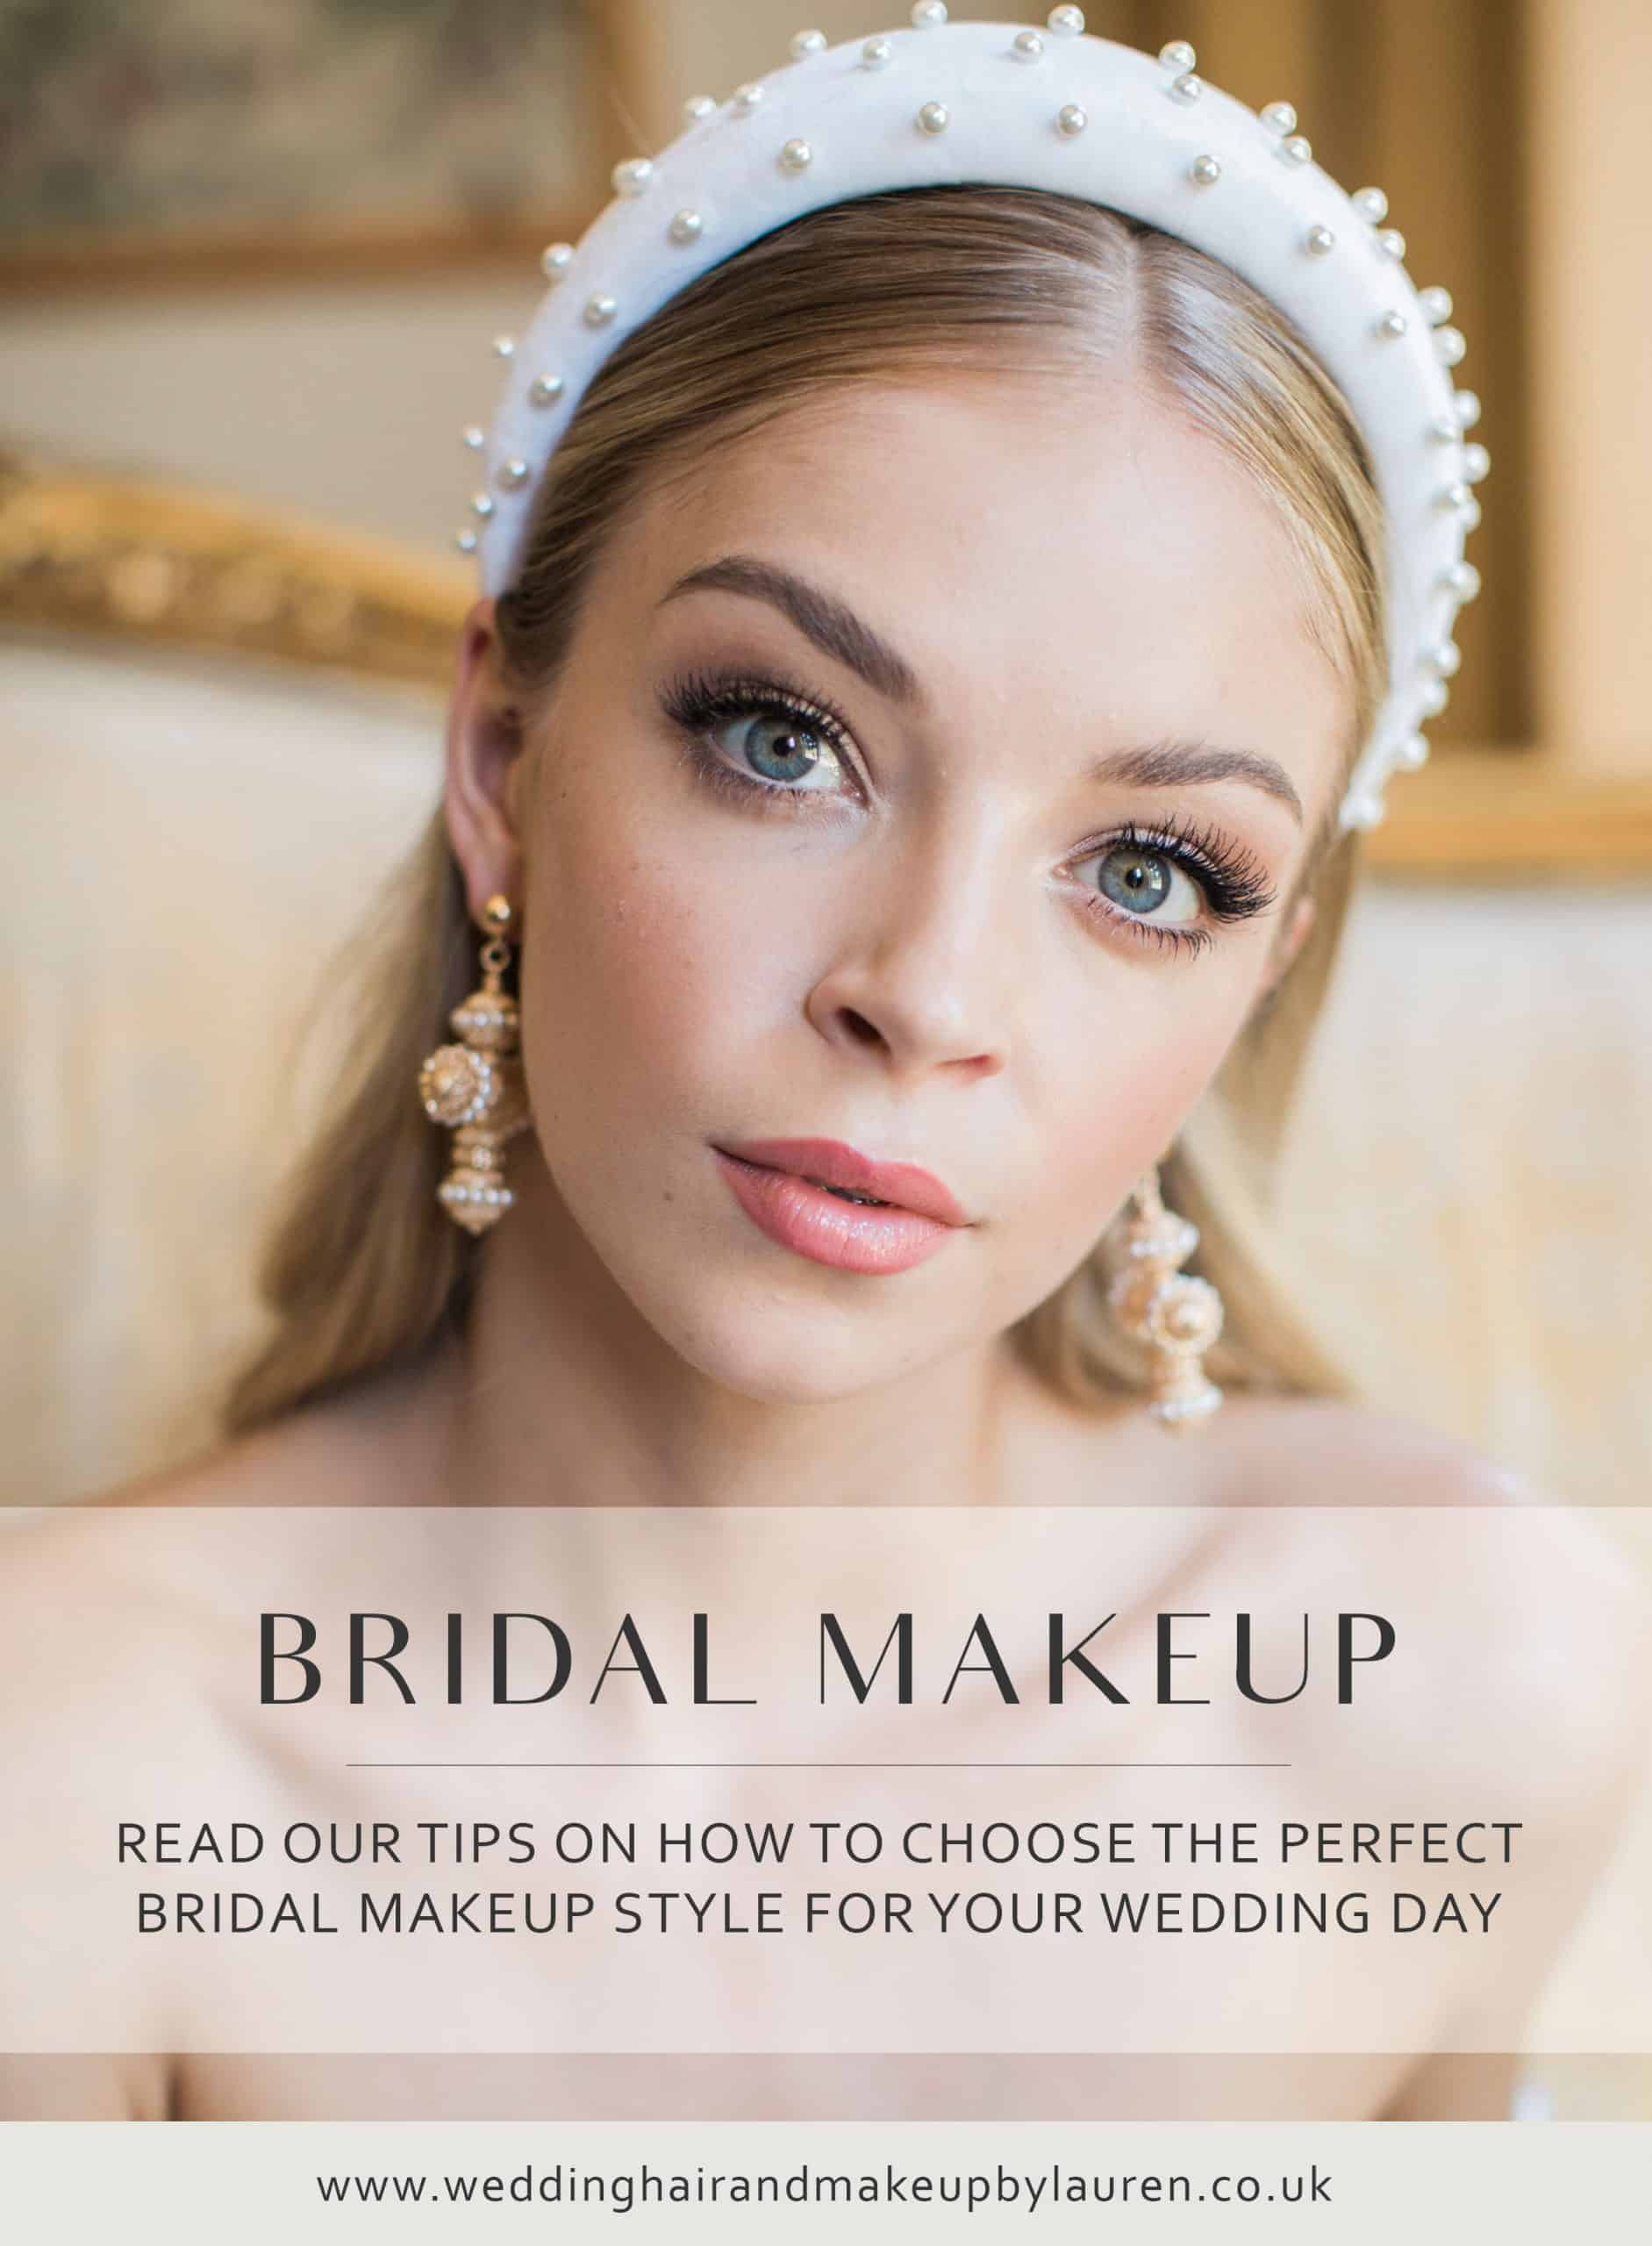 Tips On How To Choose Your Perfect Bridal Makeup